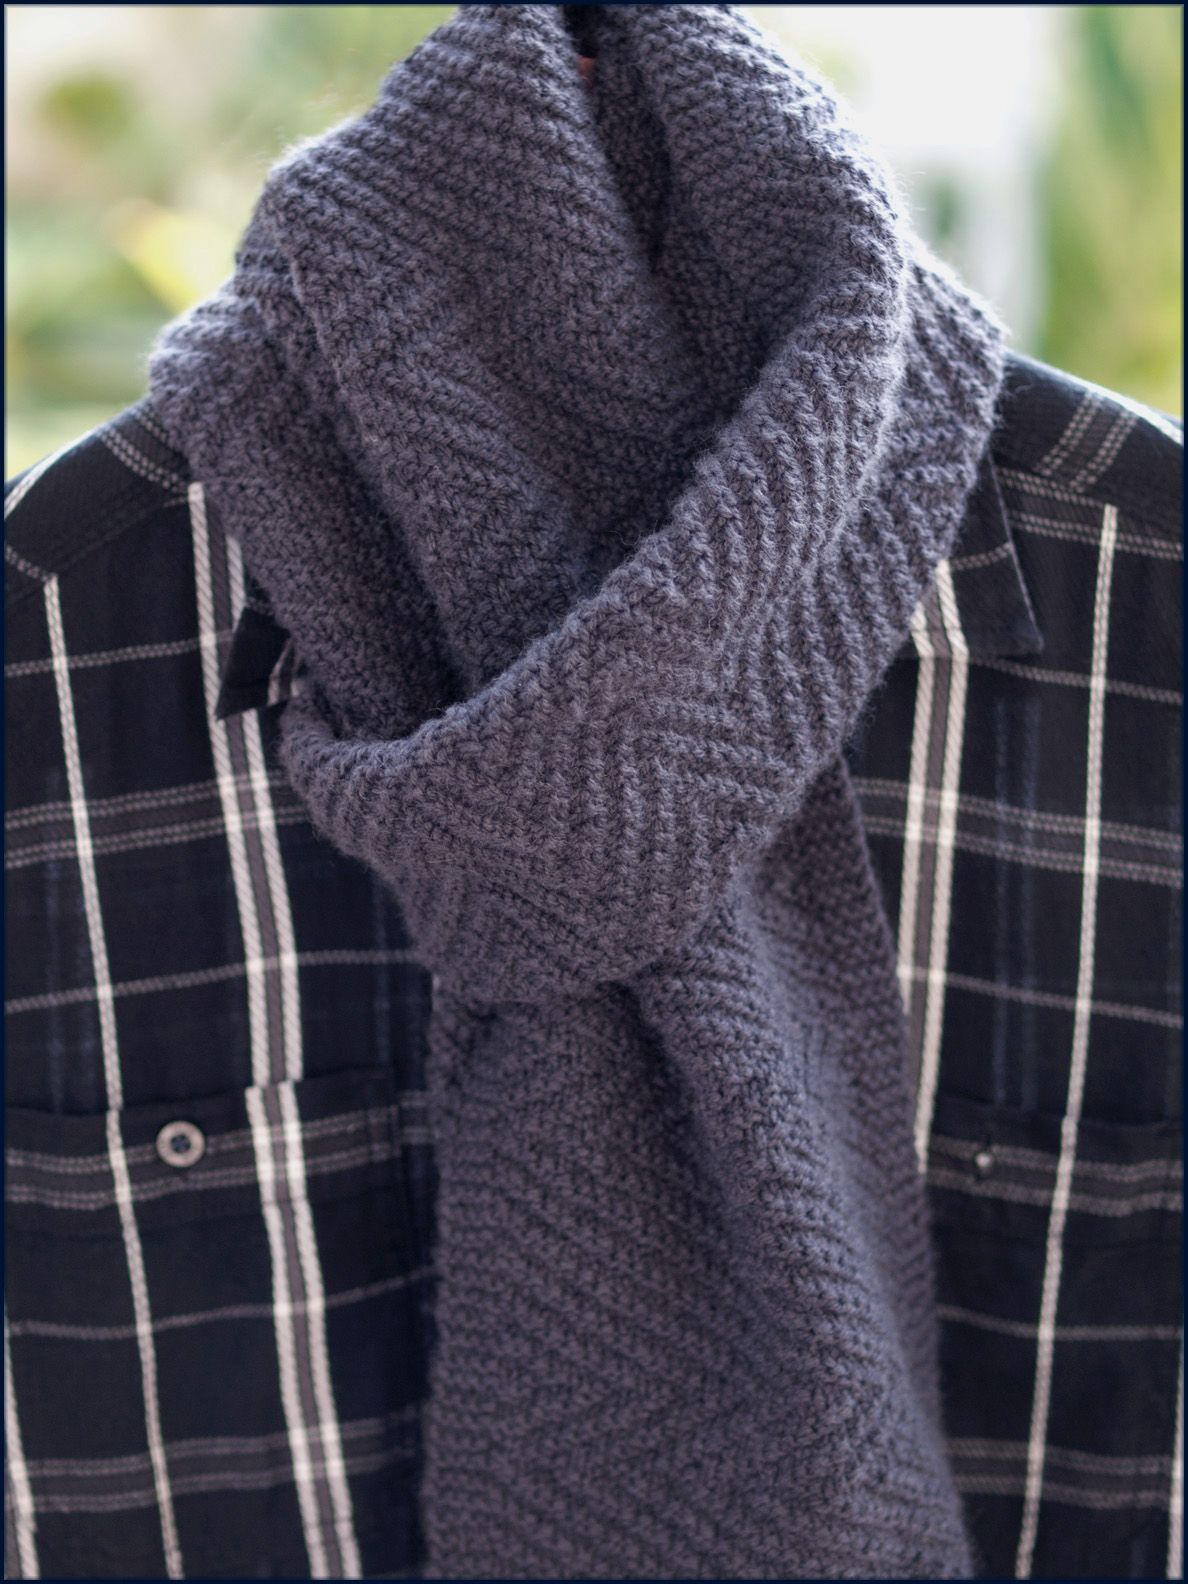 Lamberhurst Scarf | Pinterest | Cashmere yarn, Knitting patterns and ...